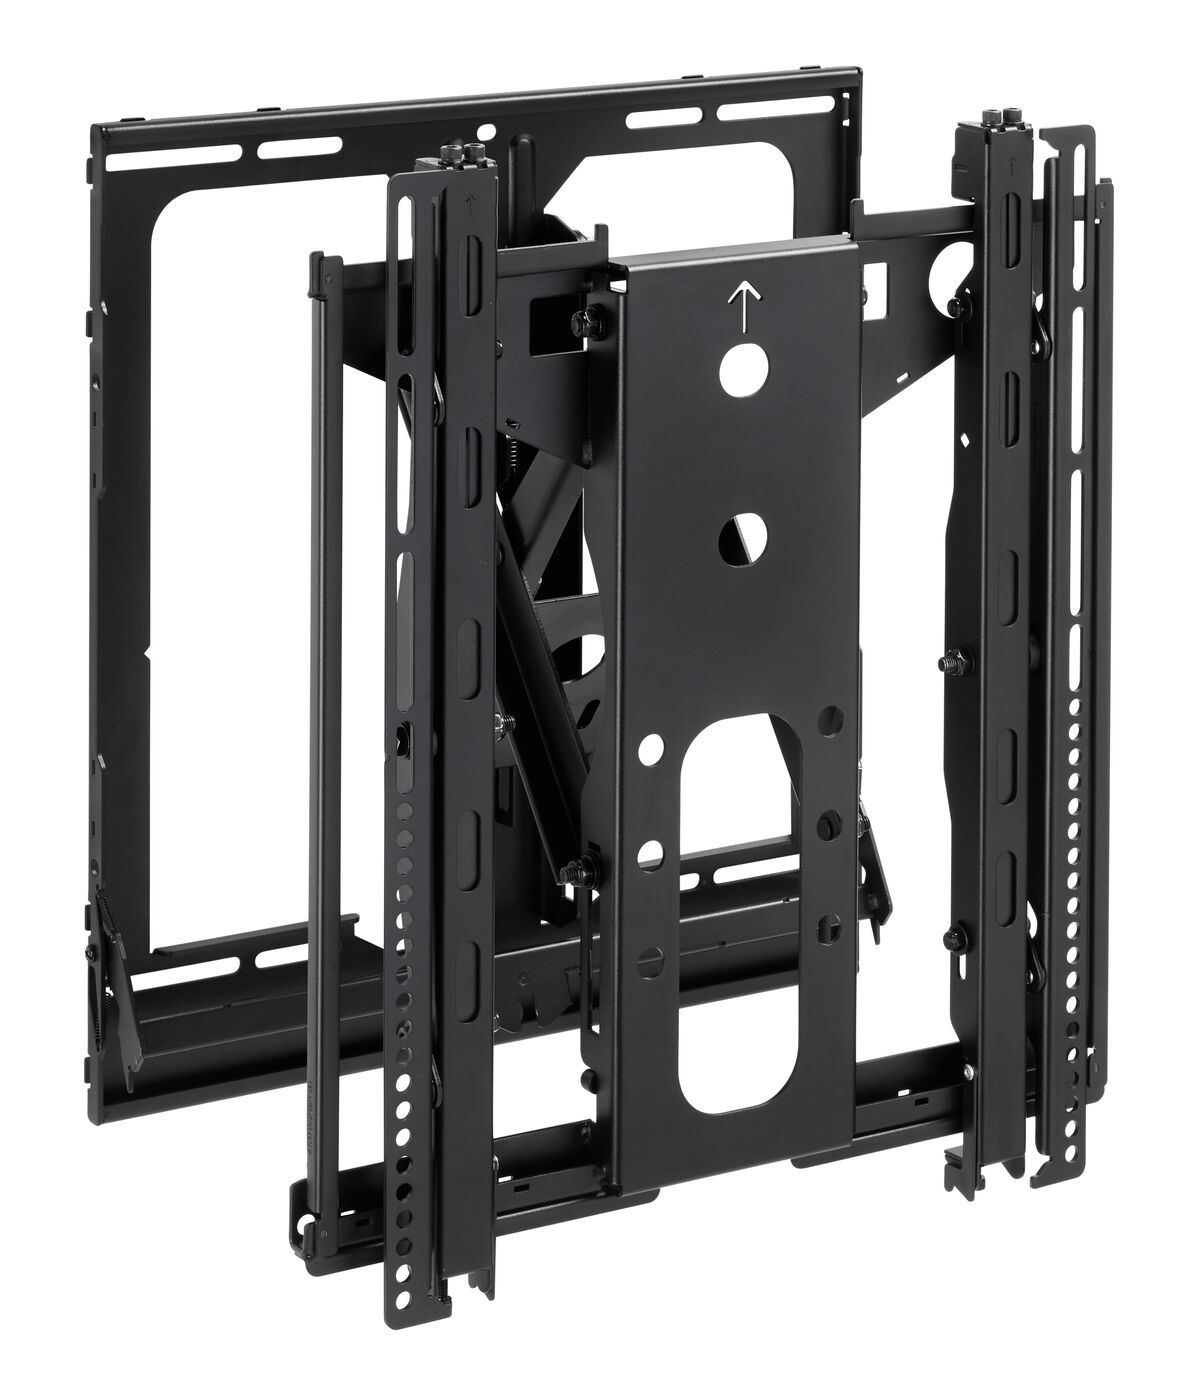 Vogel's PFW 6885 Video wall pop-out wall mount